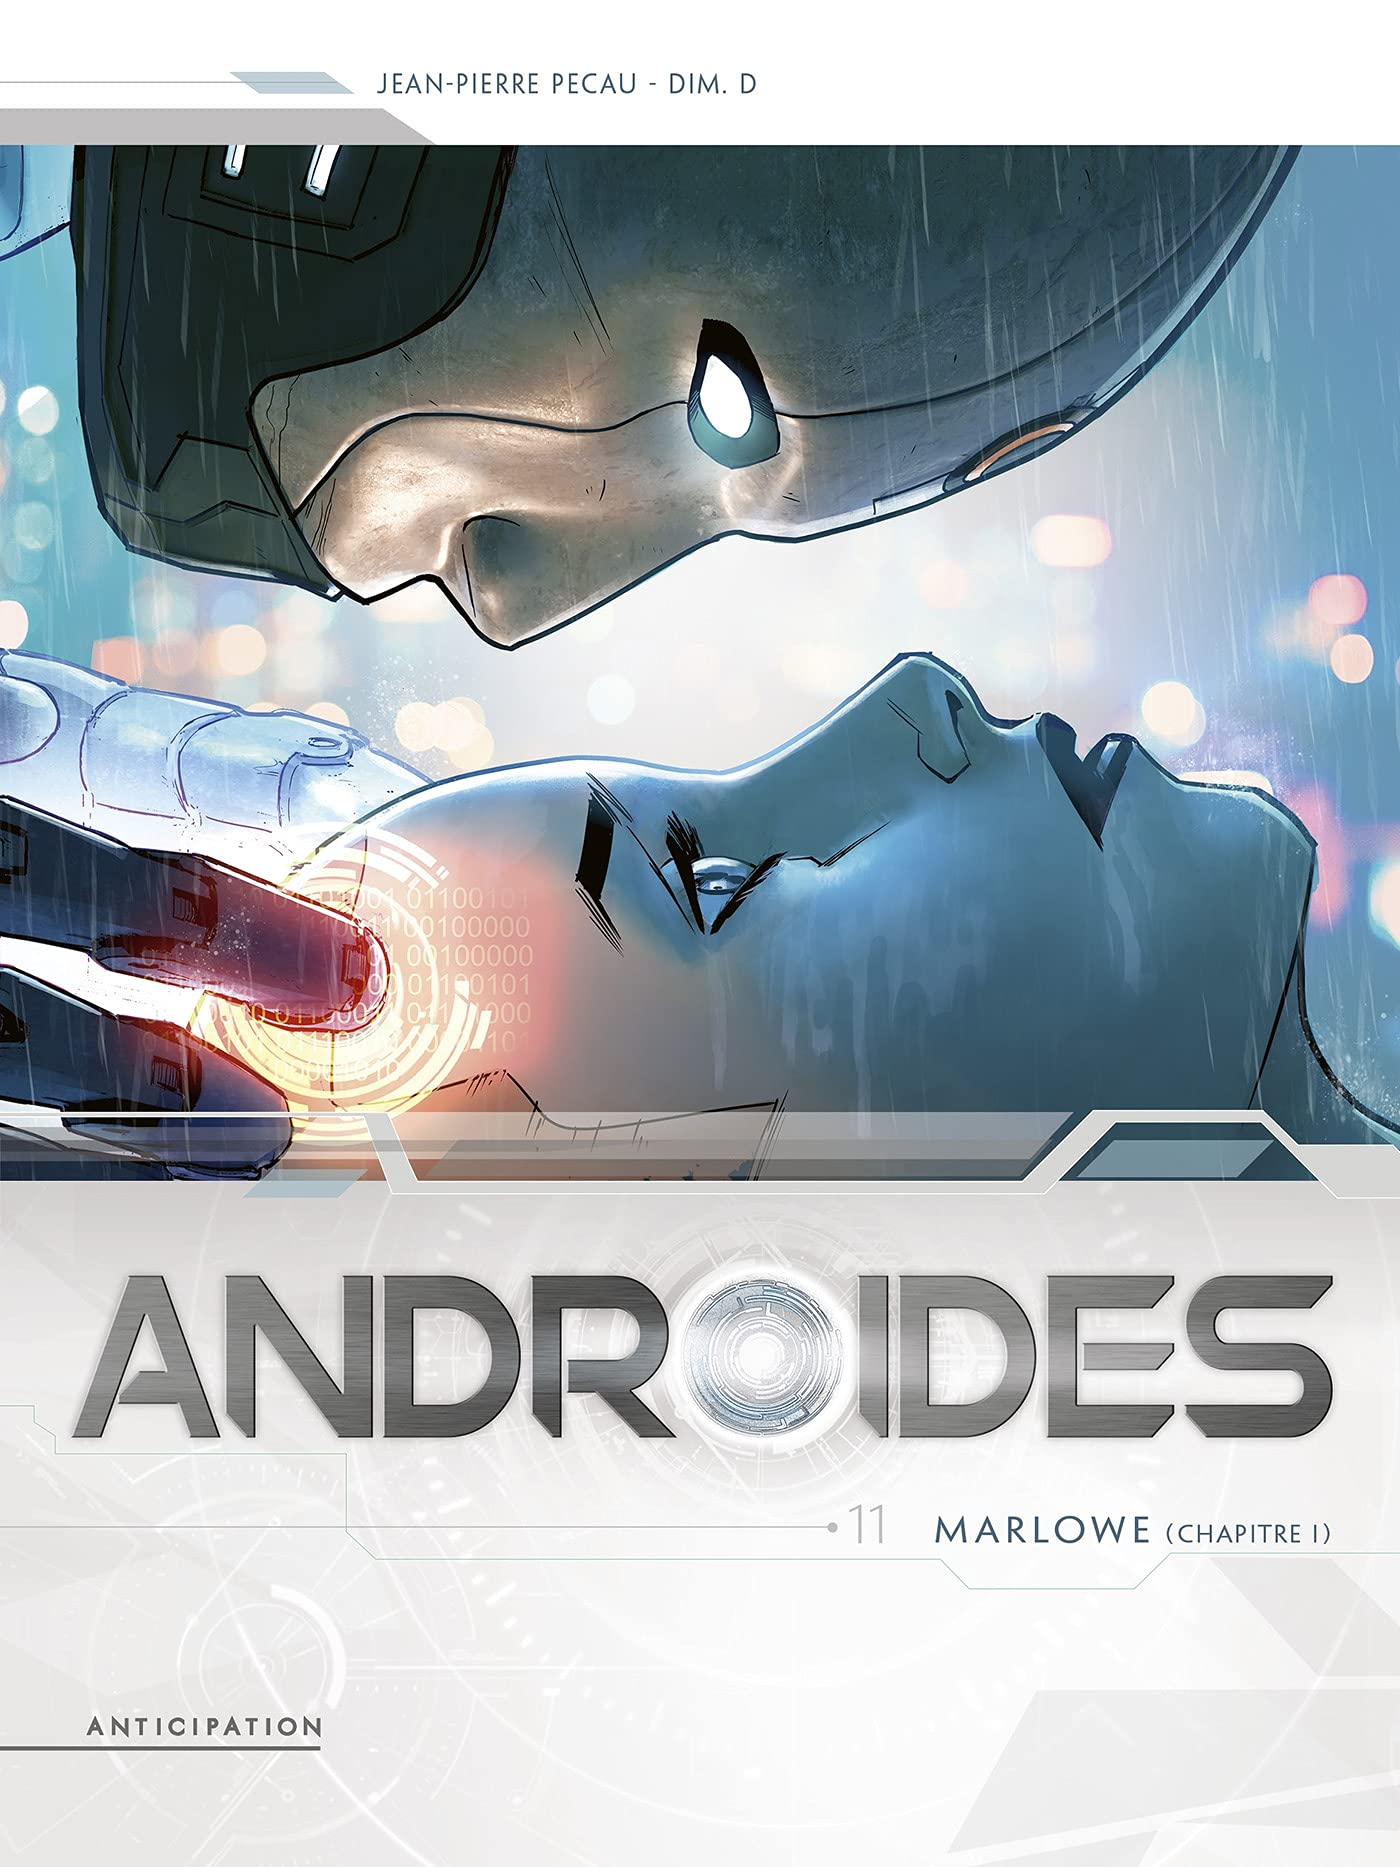 Androïdes 11 - Marlowe (chapitre 1)